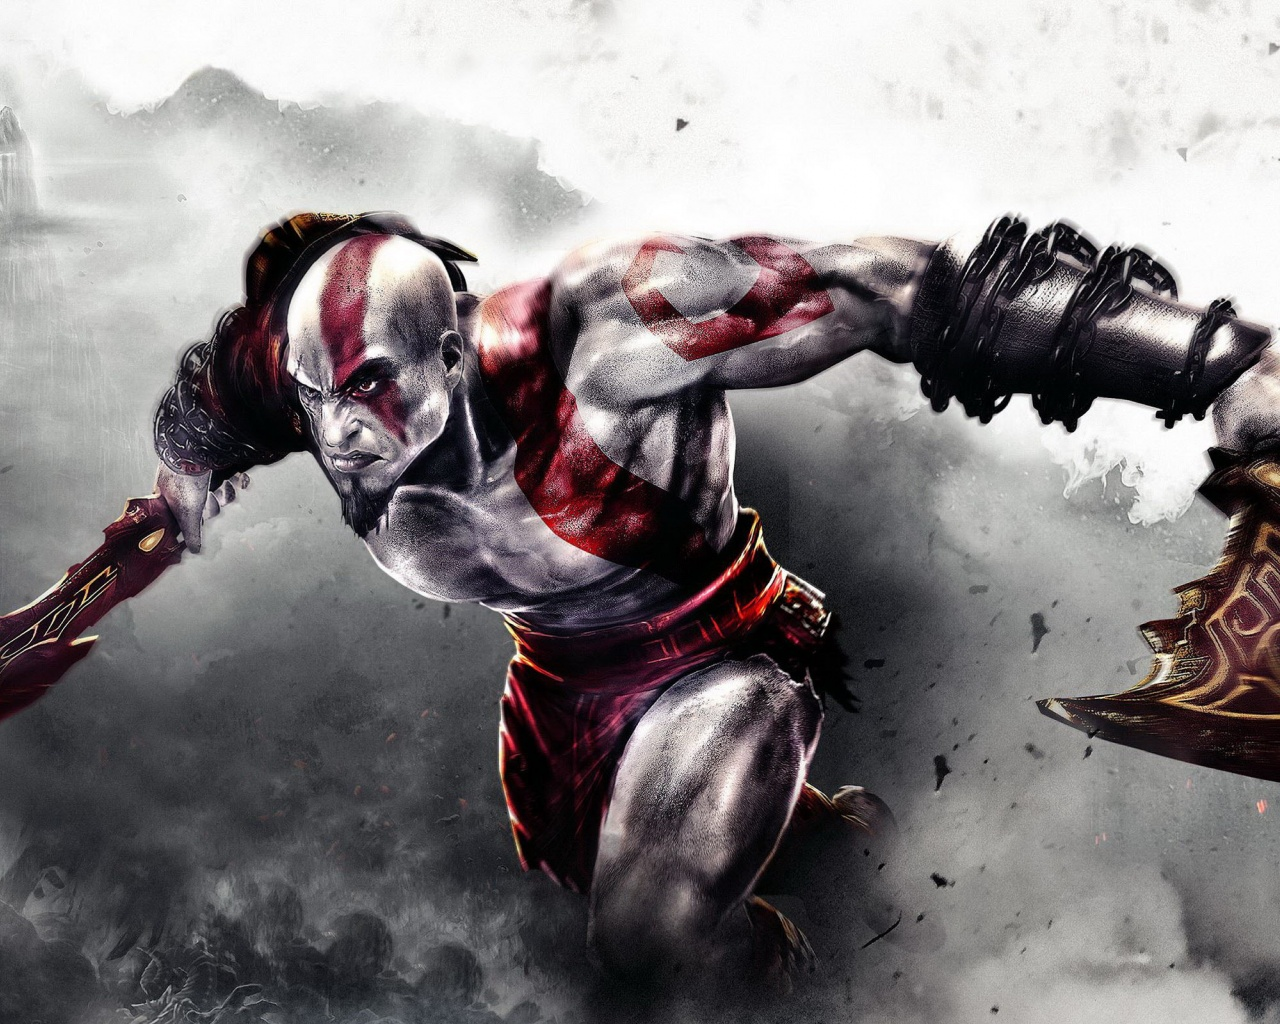 Os Roteiristas Para Adaptarem O Game    God Of War     Para O Cinema